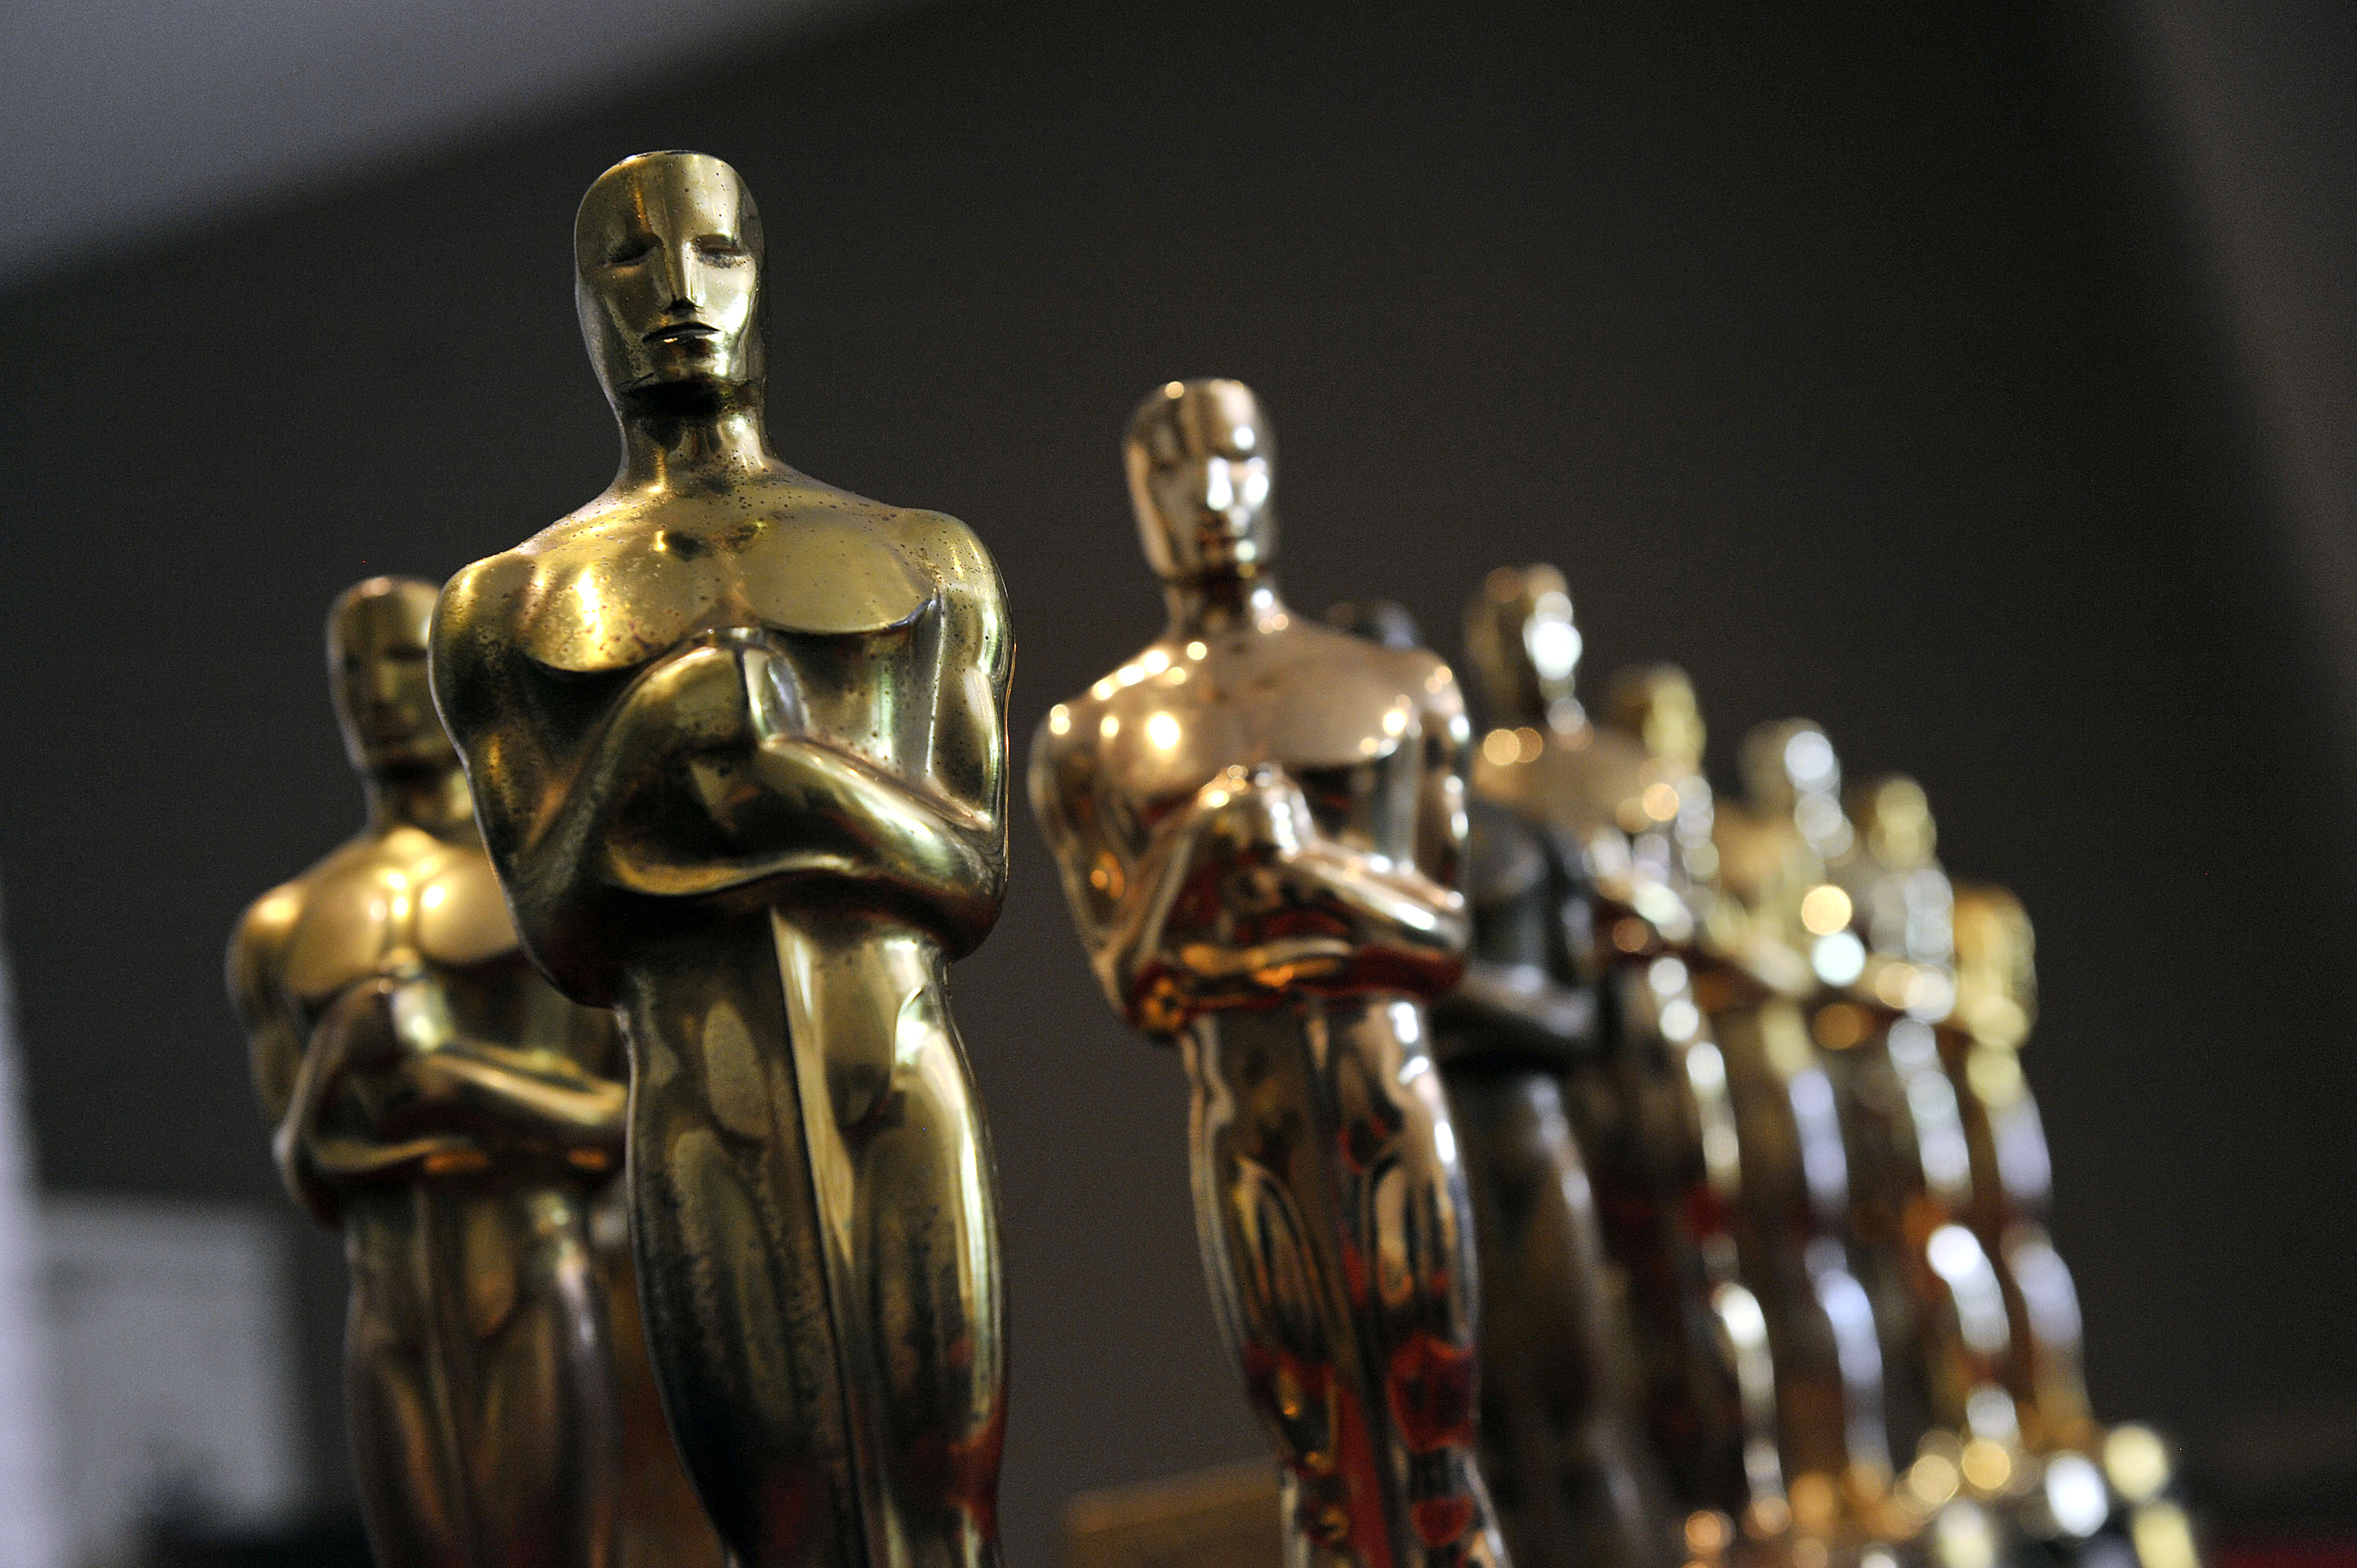 Nate Sanders displays the collection of Oscar statuettes that his auction company will sell online to the highest bidder on February 24, 2012 in Brentwood, Calif.